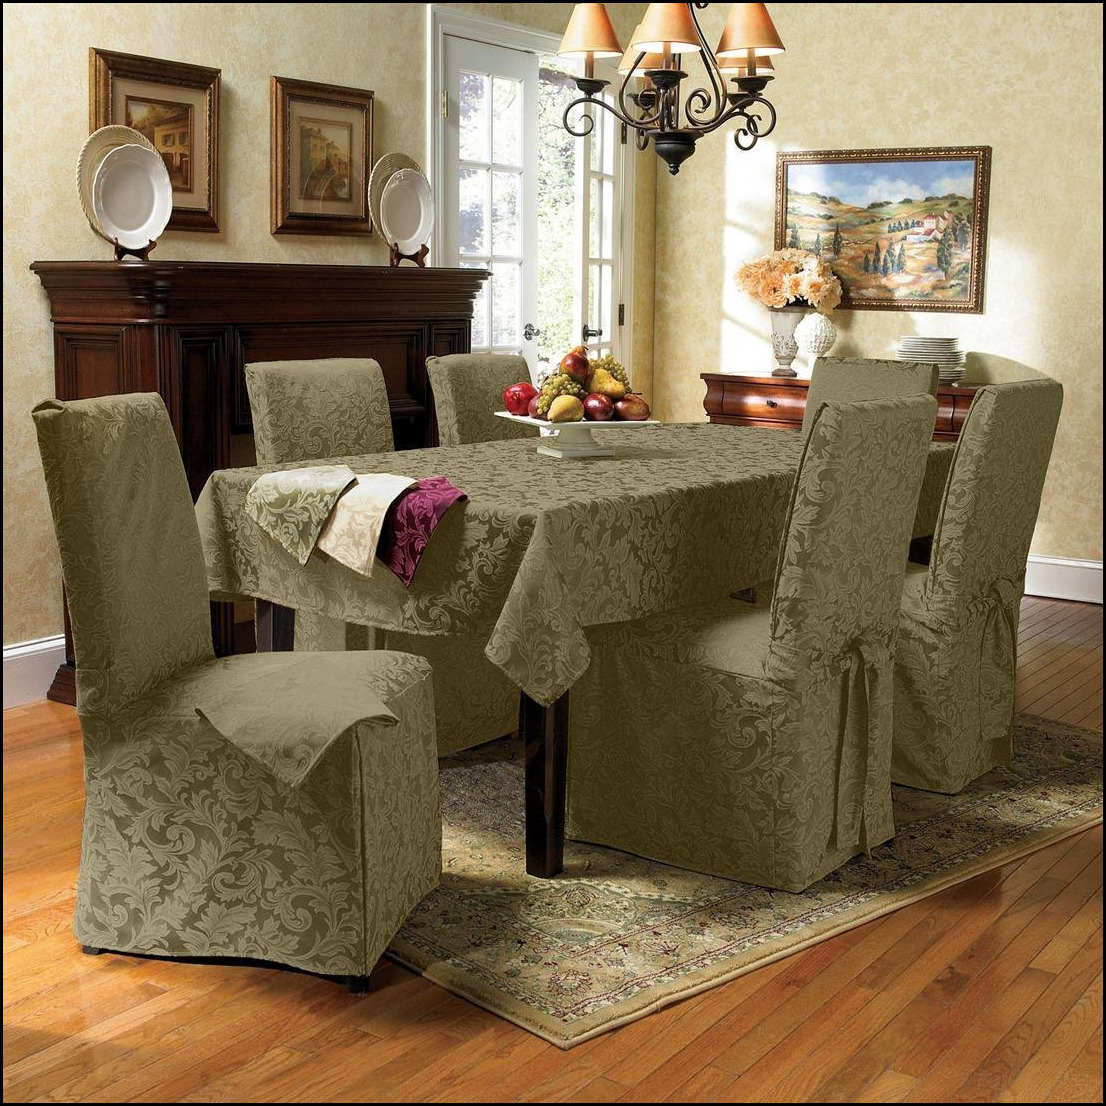 Chair Cover Ideas Covered Dining Area Chairs Gorgeous Ideal 20 Chair Covers